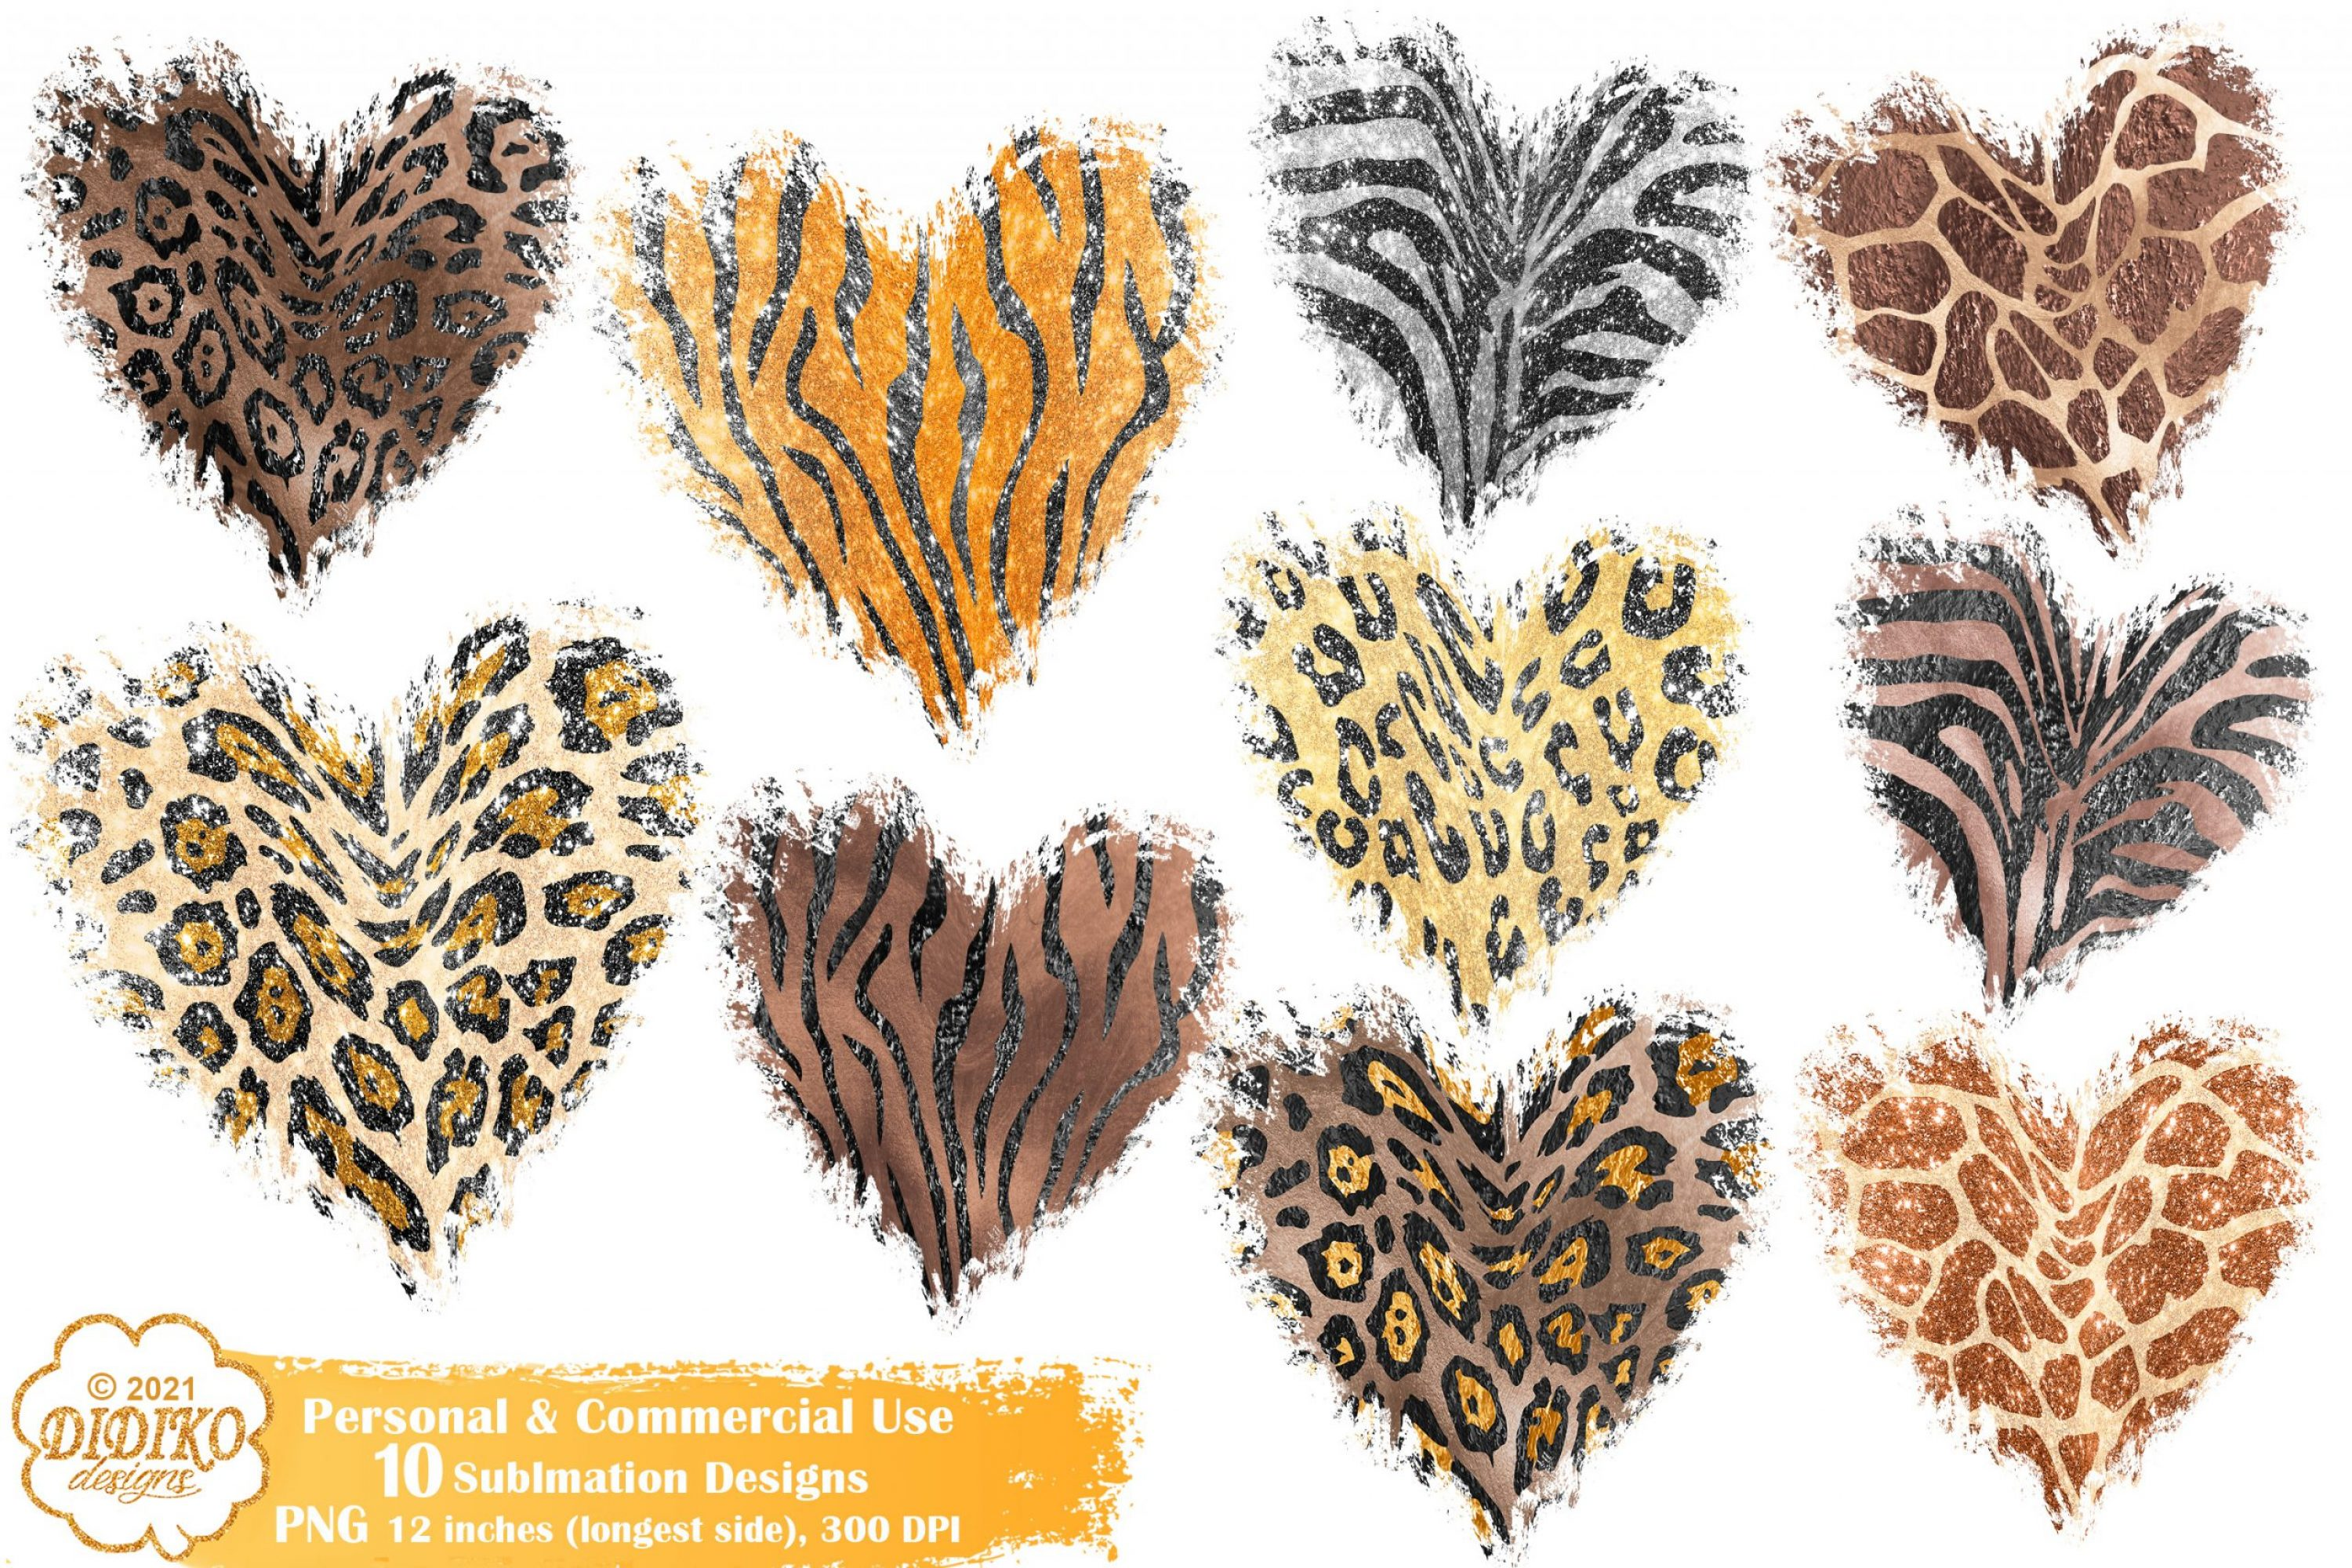 Animal Print Background Sublimation Bundle, Heart Png